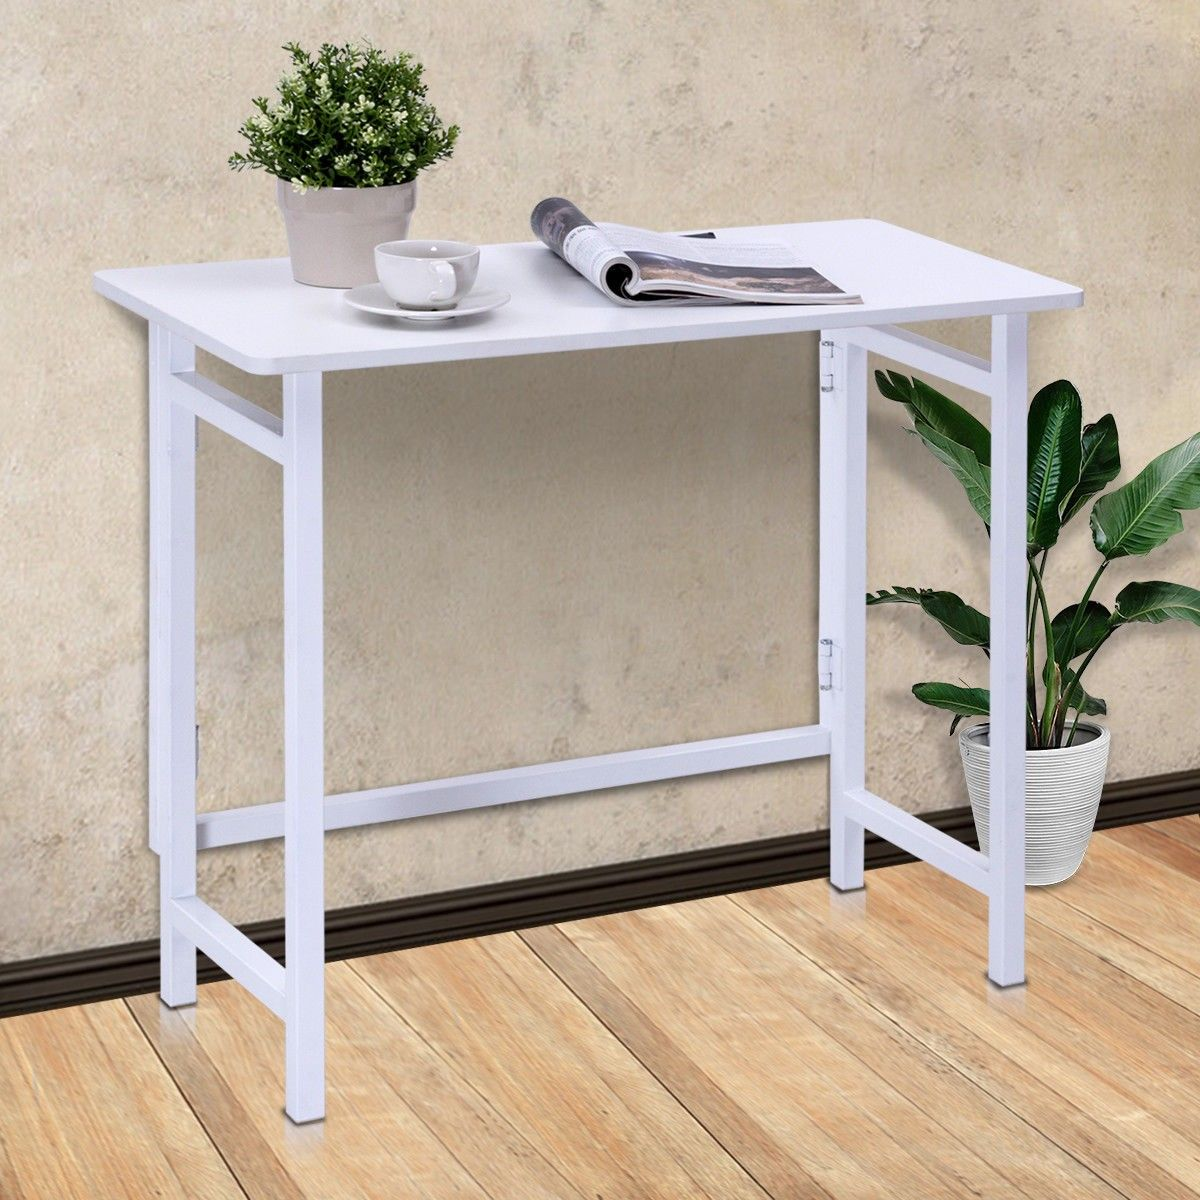 Office folding tables home office folding writing computer desk  furniture  pinterest